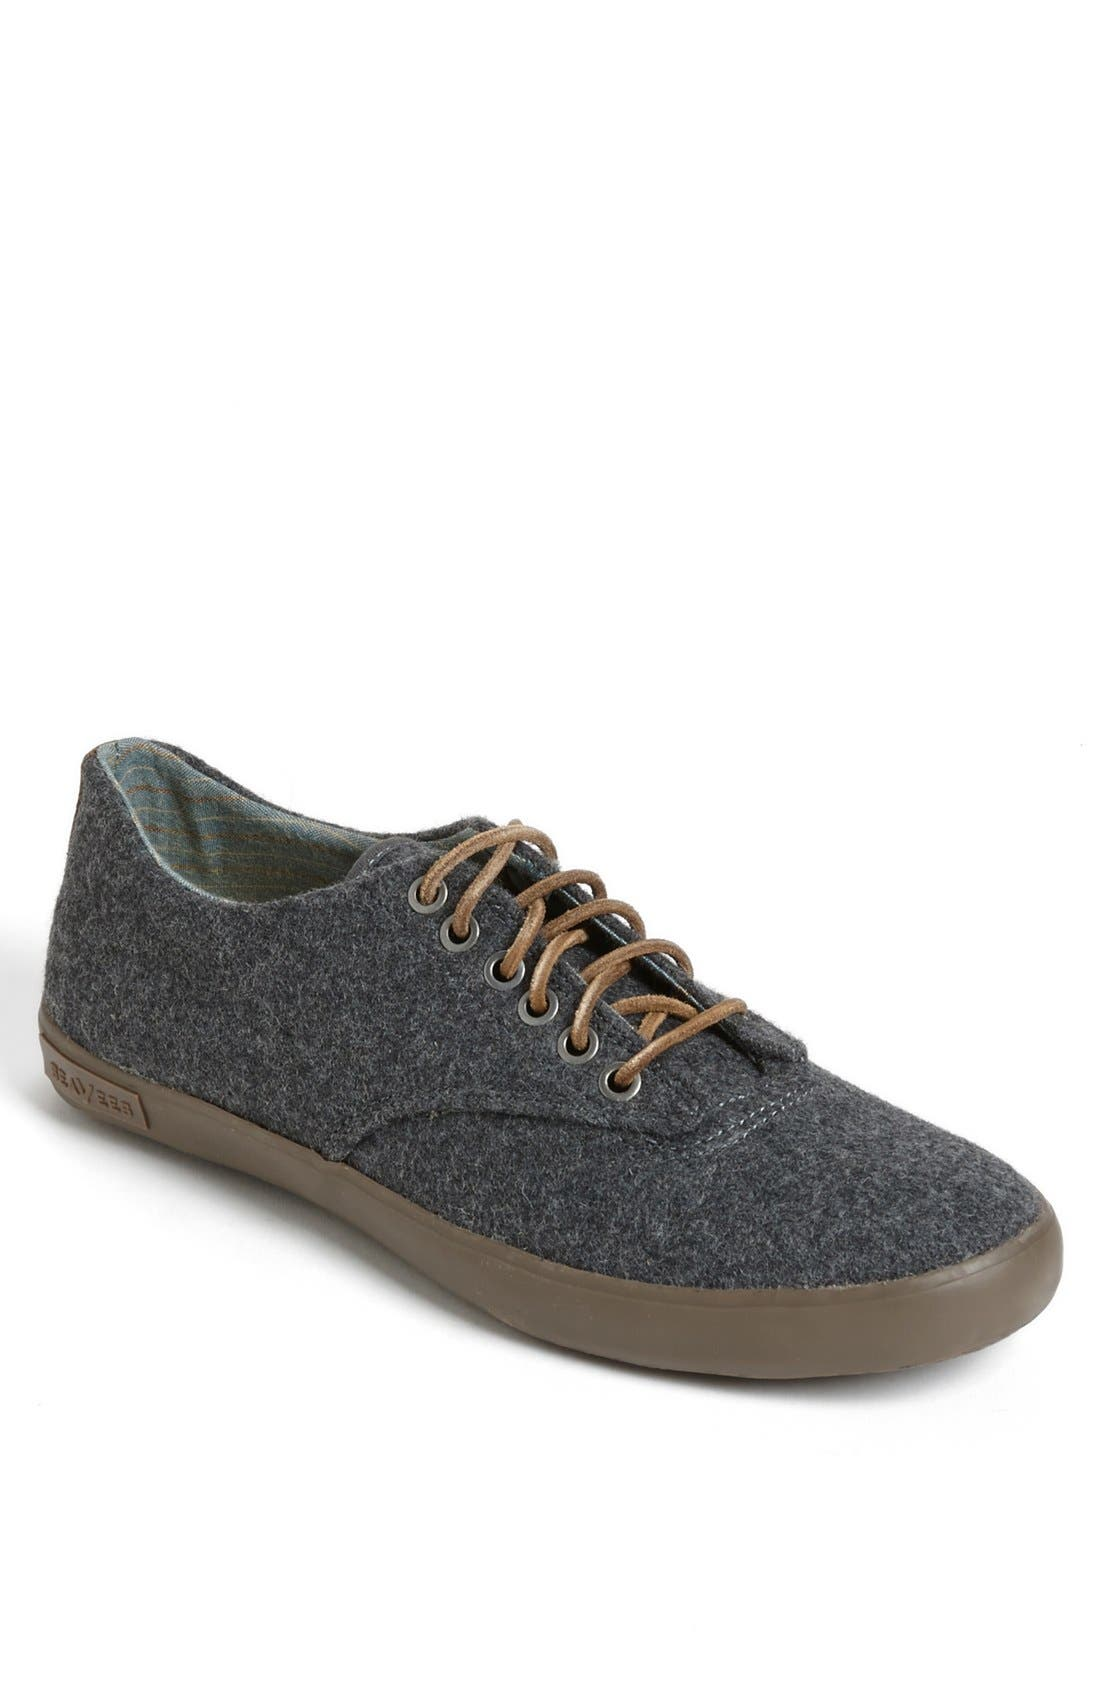 Alternate Image 1 Selected - SeaVees 'Hermosa Plimsoll Surplus' Boiled Wool Sneaker